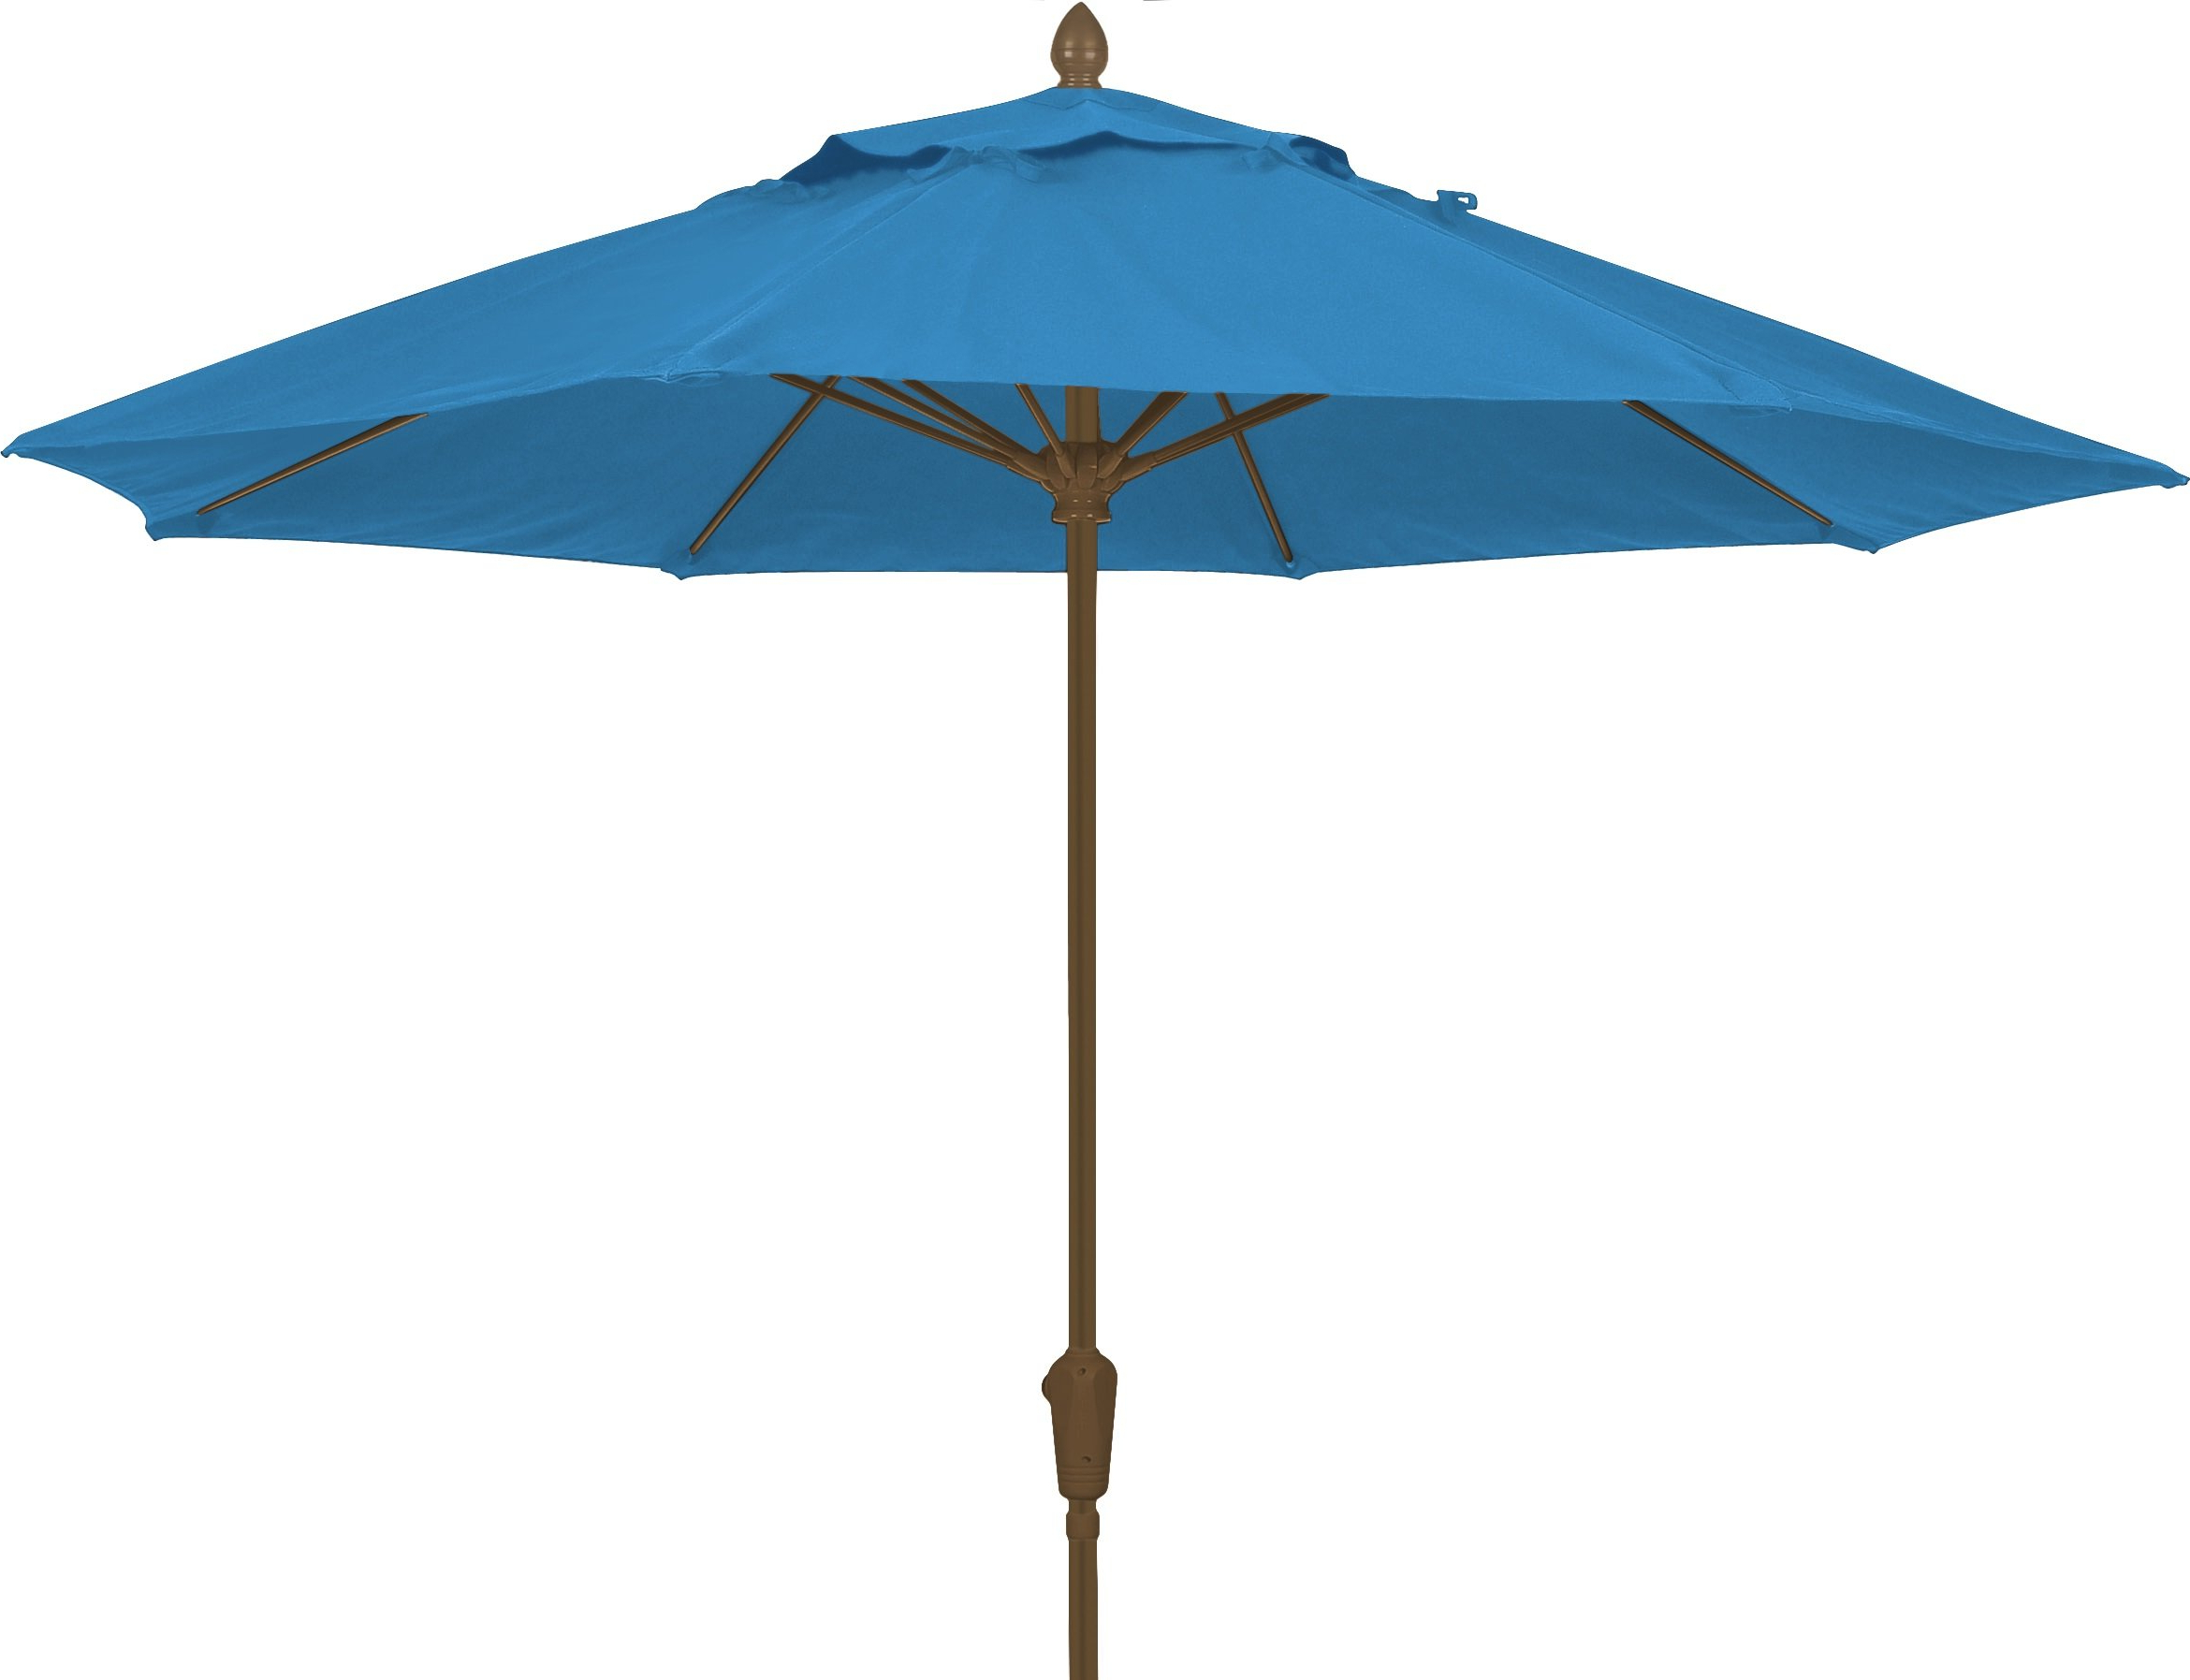 Trendy Prestige 9' Market Sunbrella Umbrella Regarding Mucci Madilyn Market Sunbrella Umbrellas (View 17 of 20)